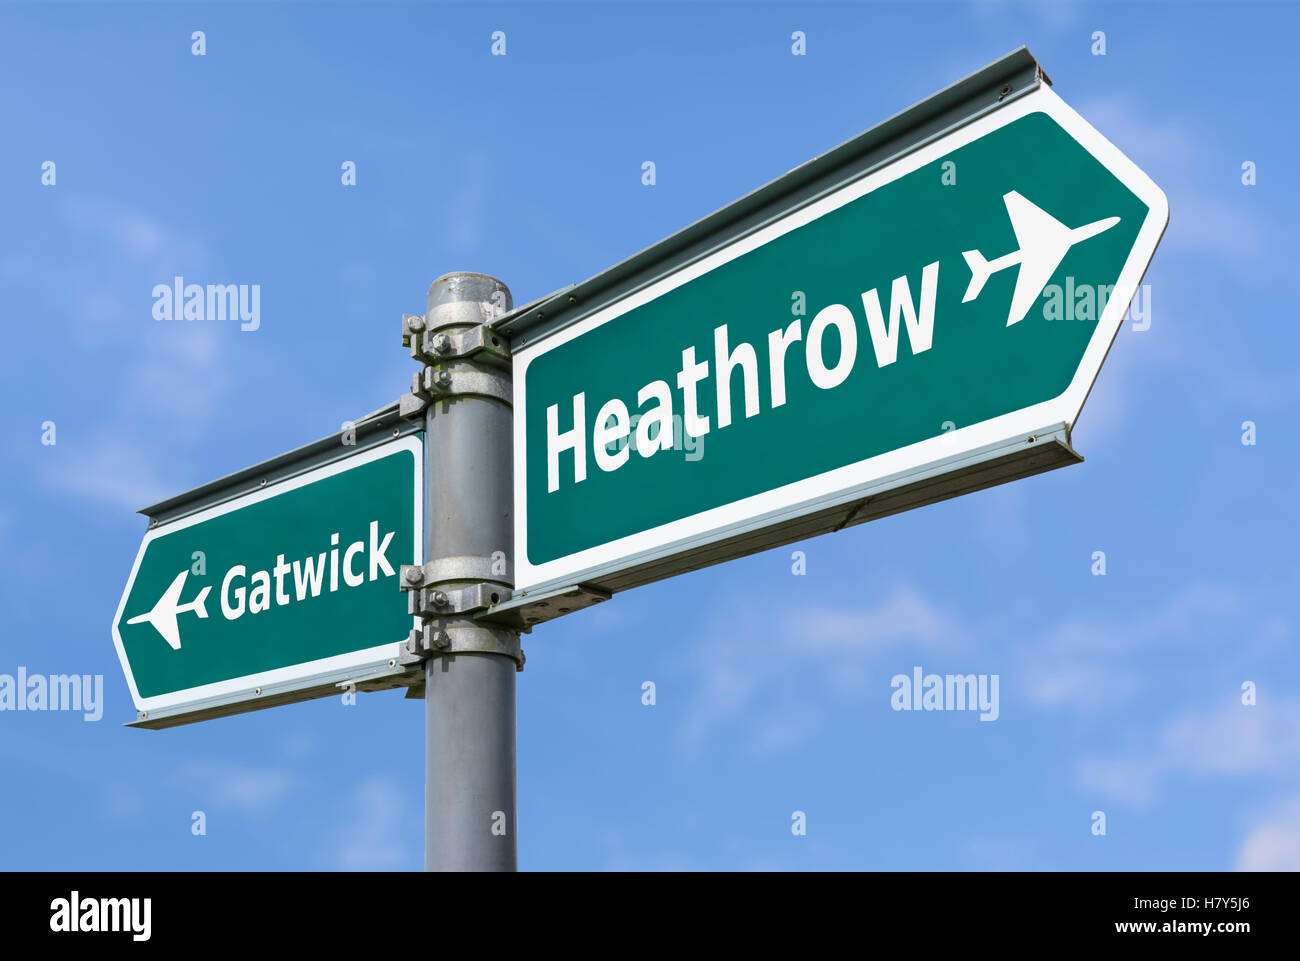 Gatwick or Heathrow UK airports direction sign. - Stock Image